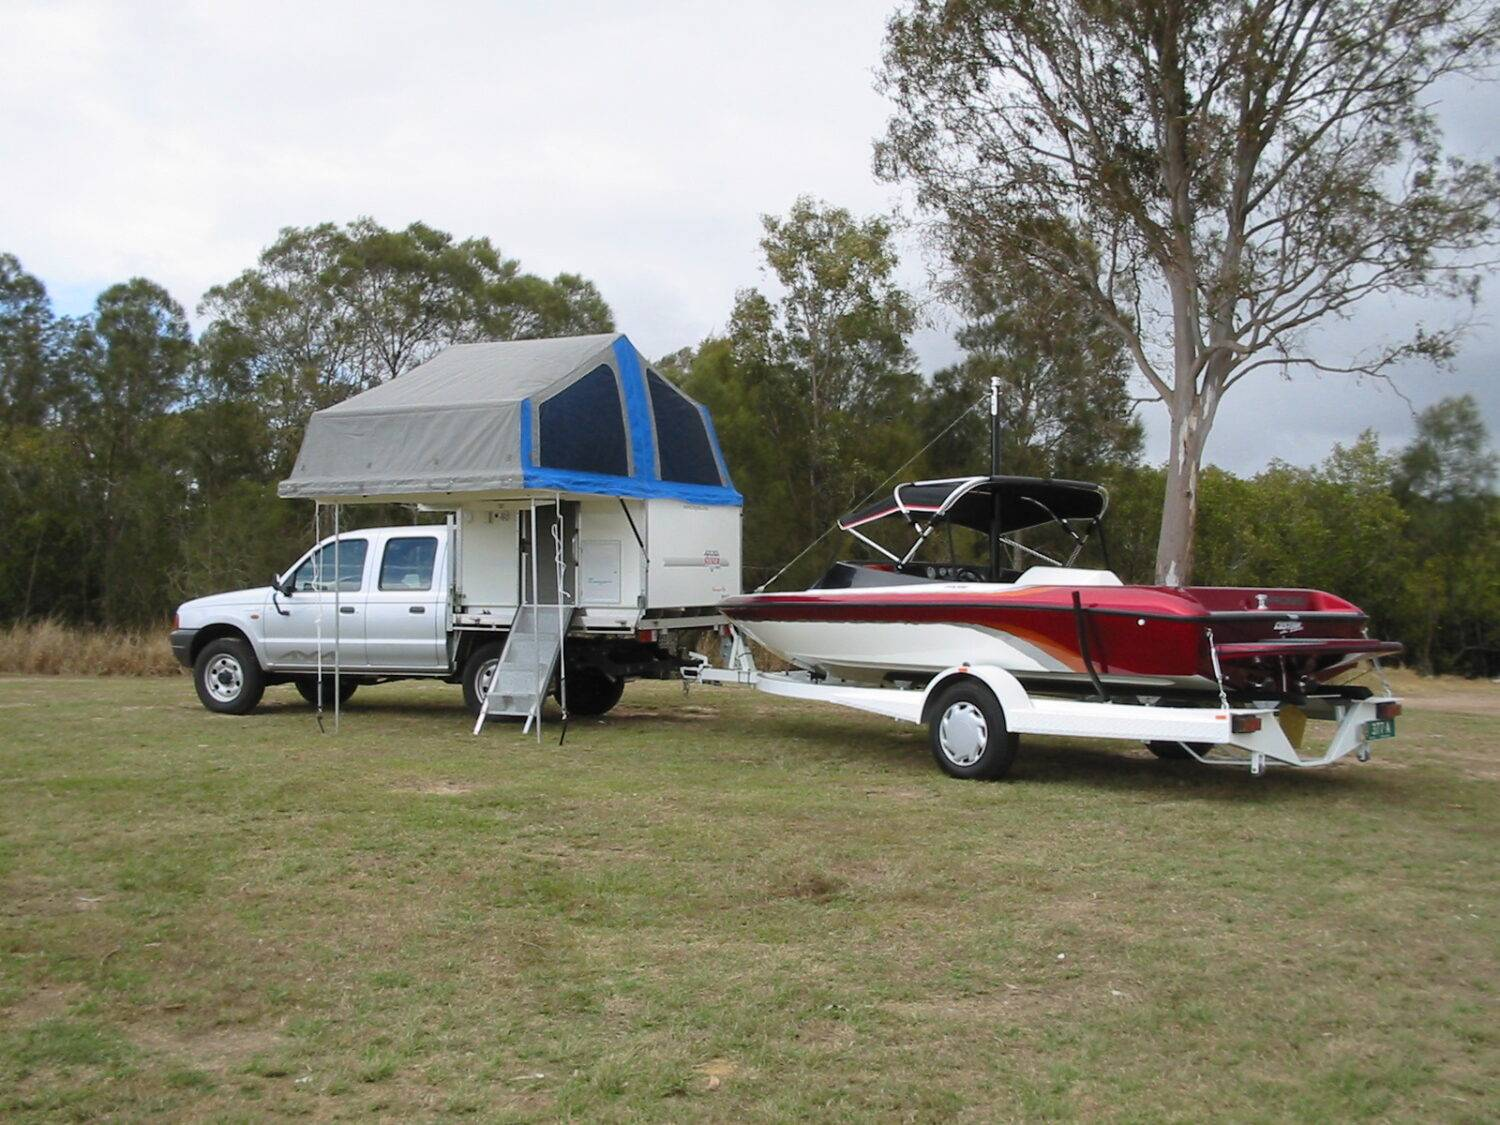 towing slide on camper speed boat side entry (Trayon Camper)